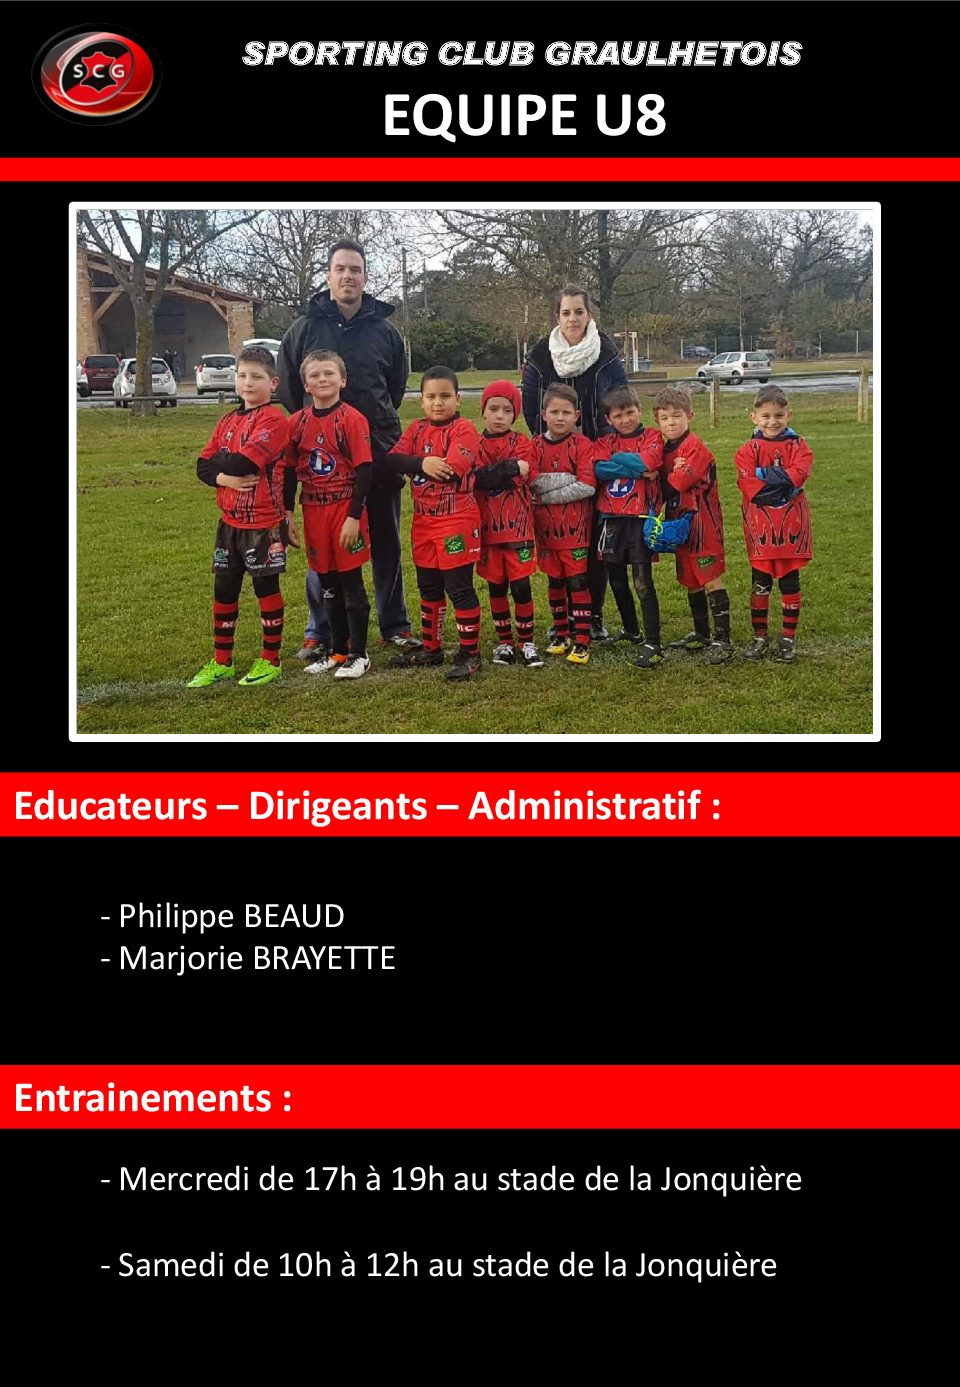 http://scg-rugby.com/wp-content/uploads/2018/04/U8-GROUPE-pdf-2.jpg